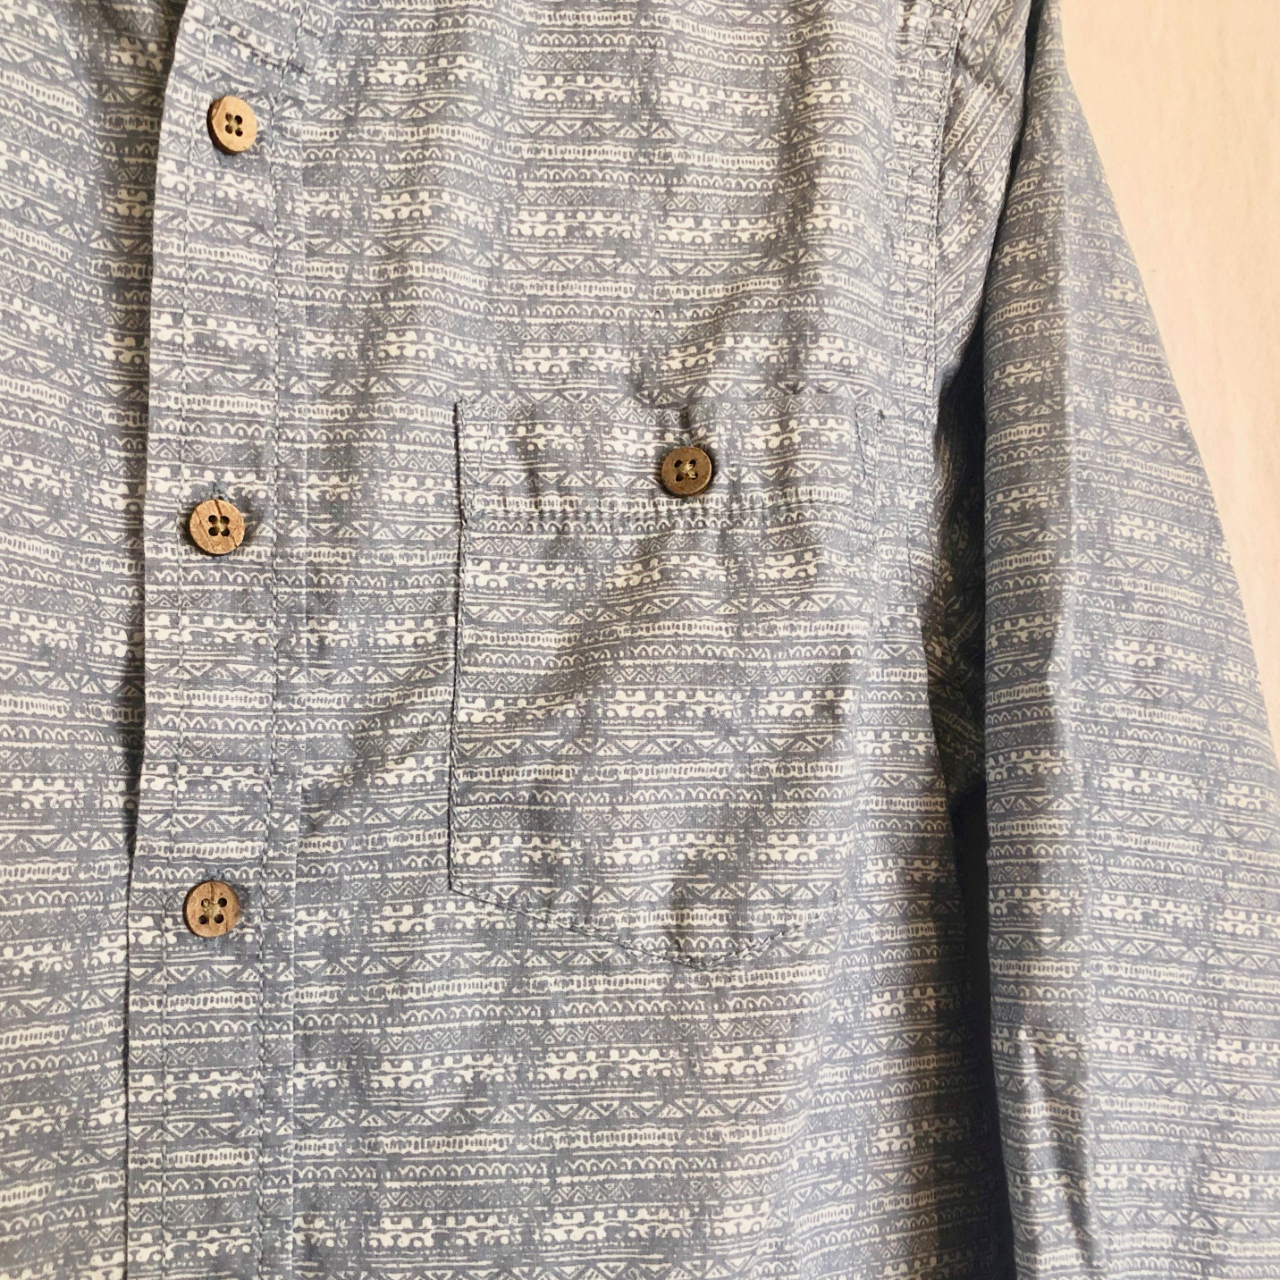 Product Image 1 - Tribal Print Button up shirt.